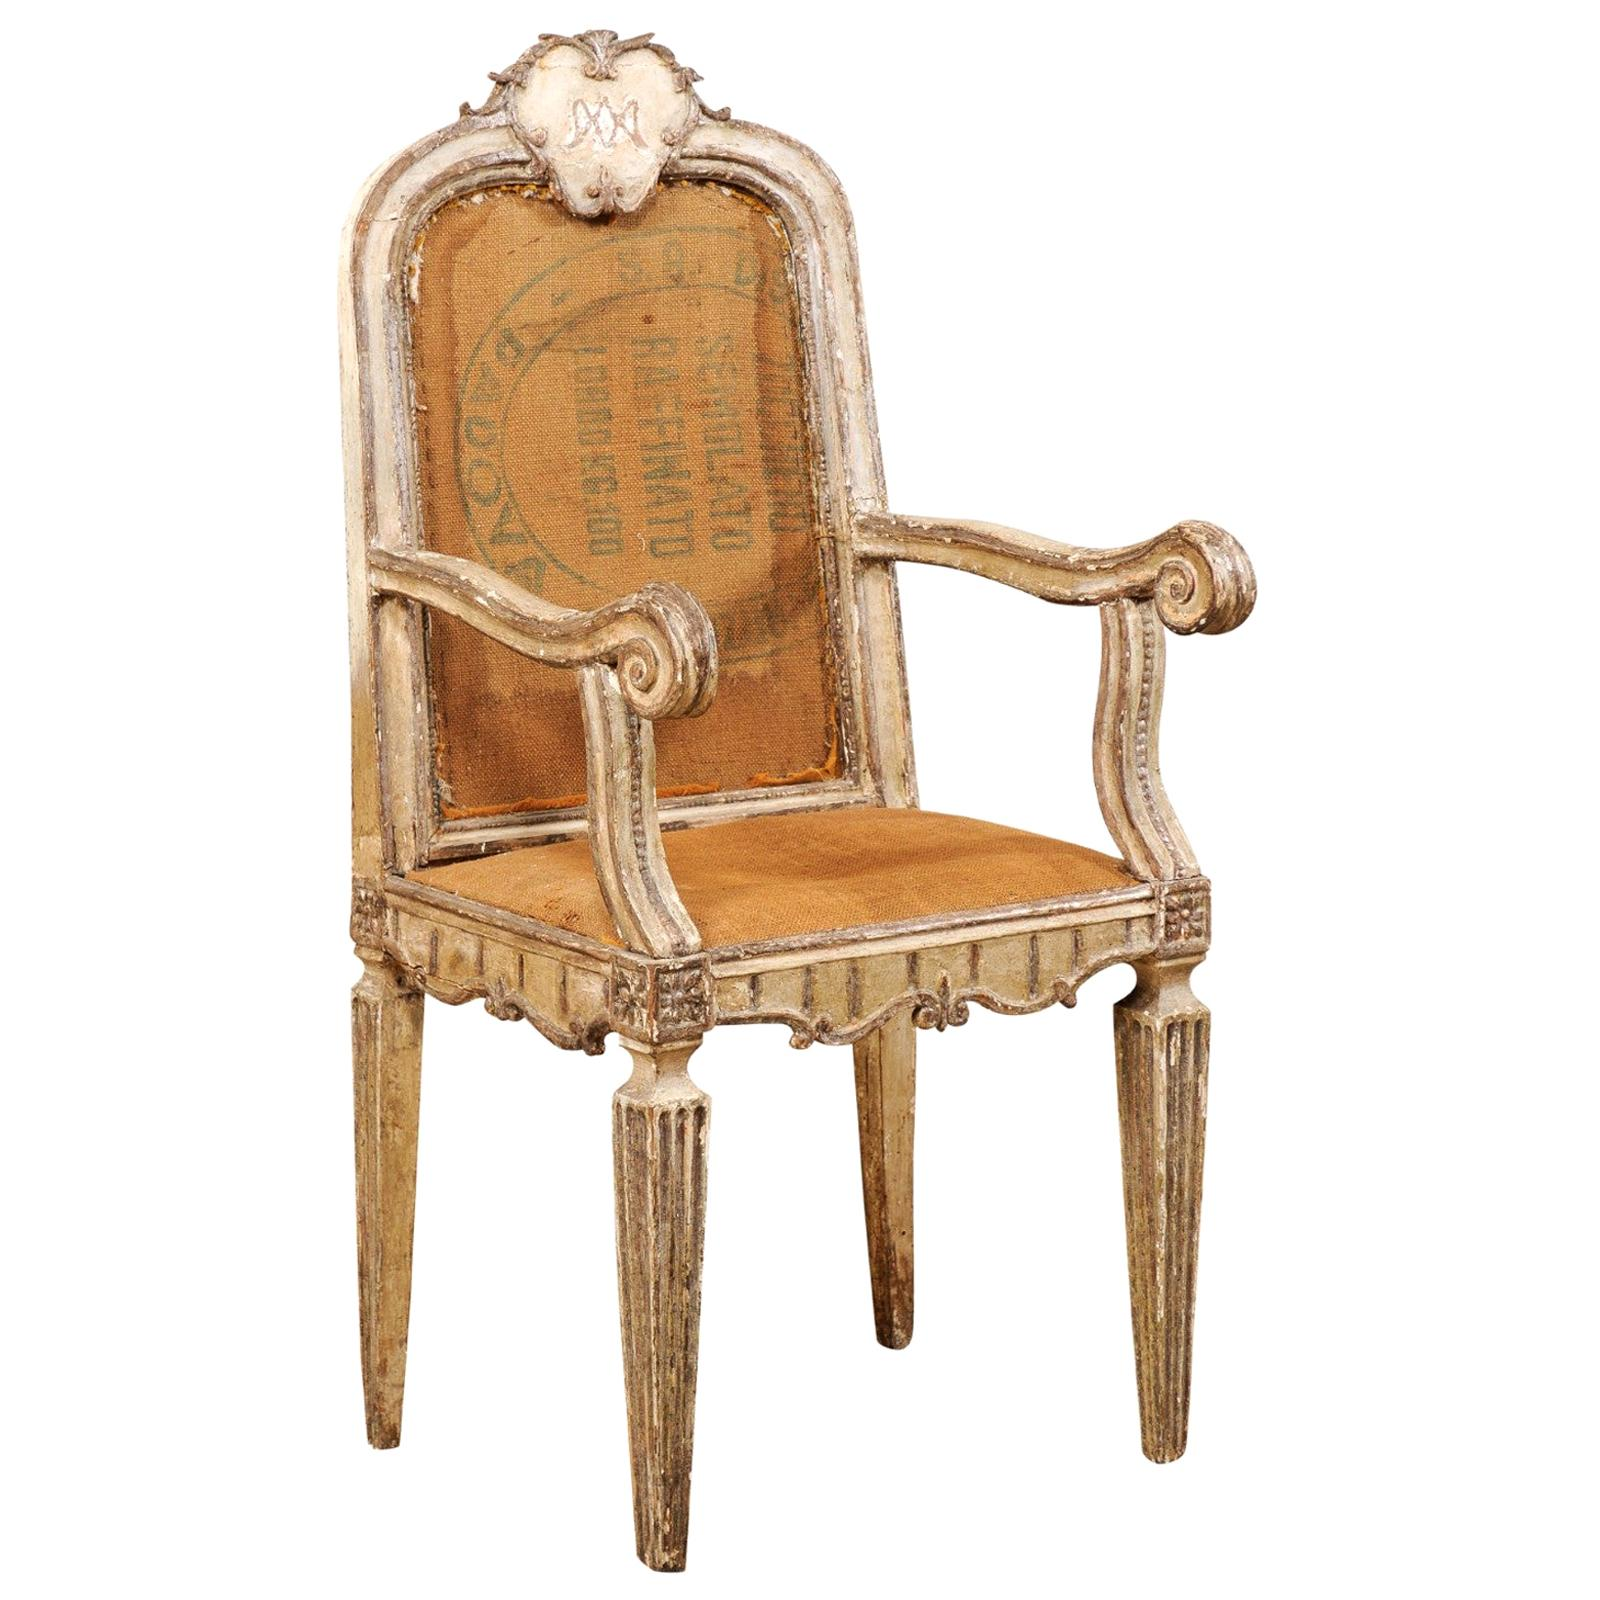 18th Century Carved-Wood & Upholstered Armchair from Italy